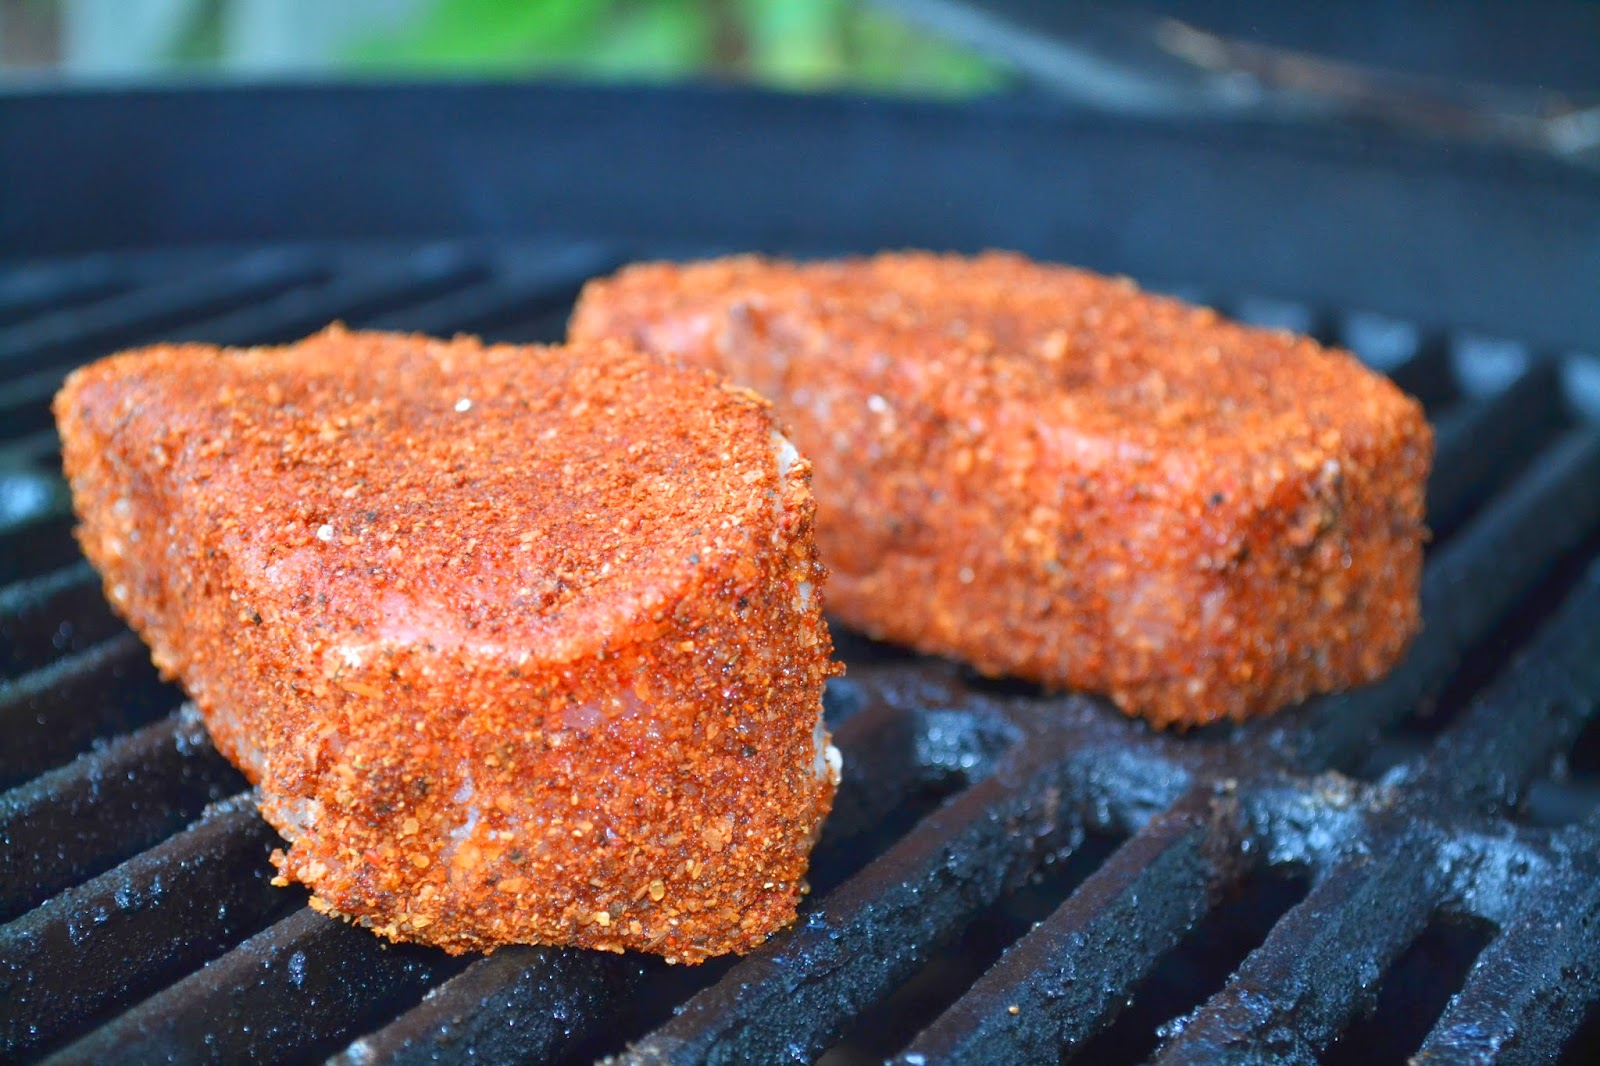 Place The Pork Chops On The Bge And Cook Them To Temperature We Are  Looking For About 130 Make It 120 Internal Temperature Maybe 8 Minutesish  And Then Pull